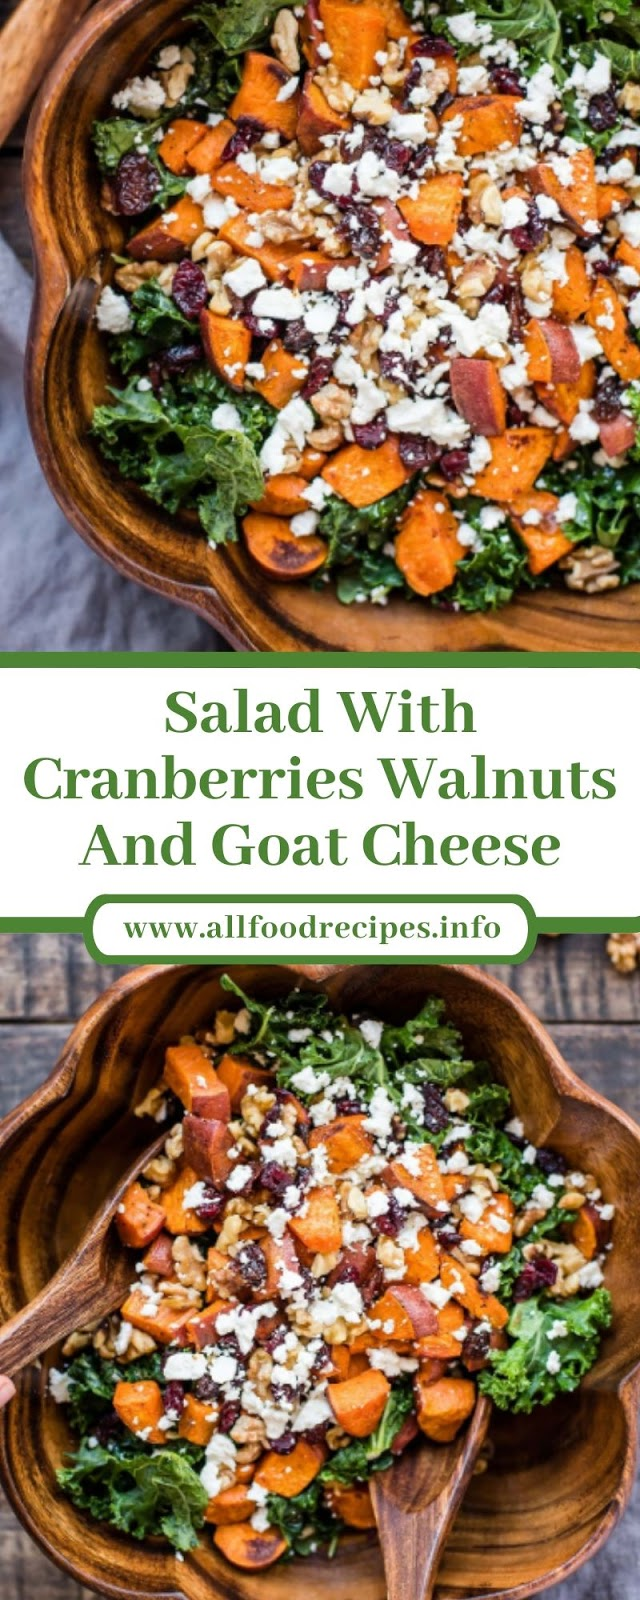 Salad With Cranberries Walnuts And Goat Cheese